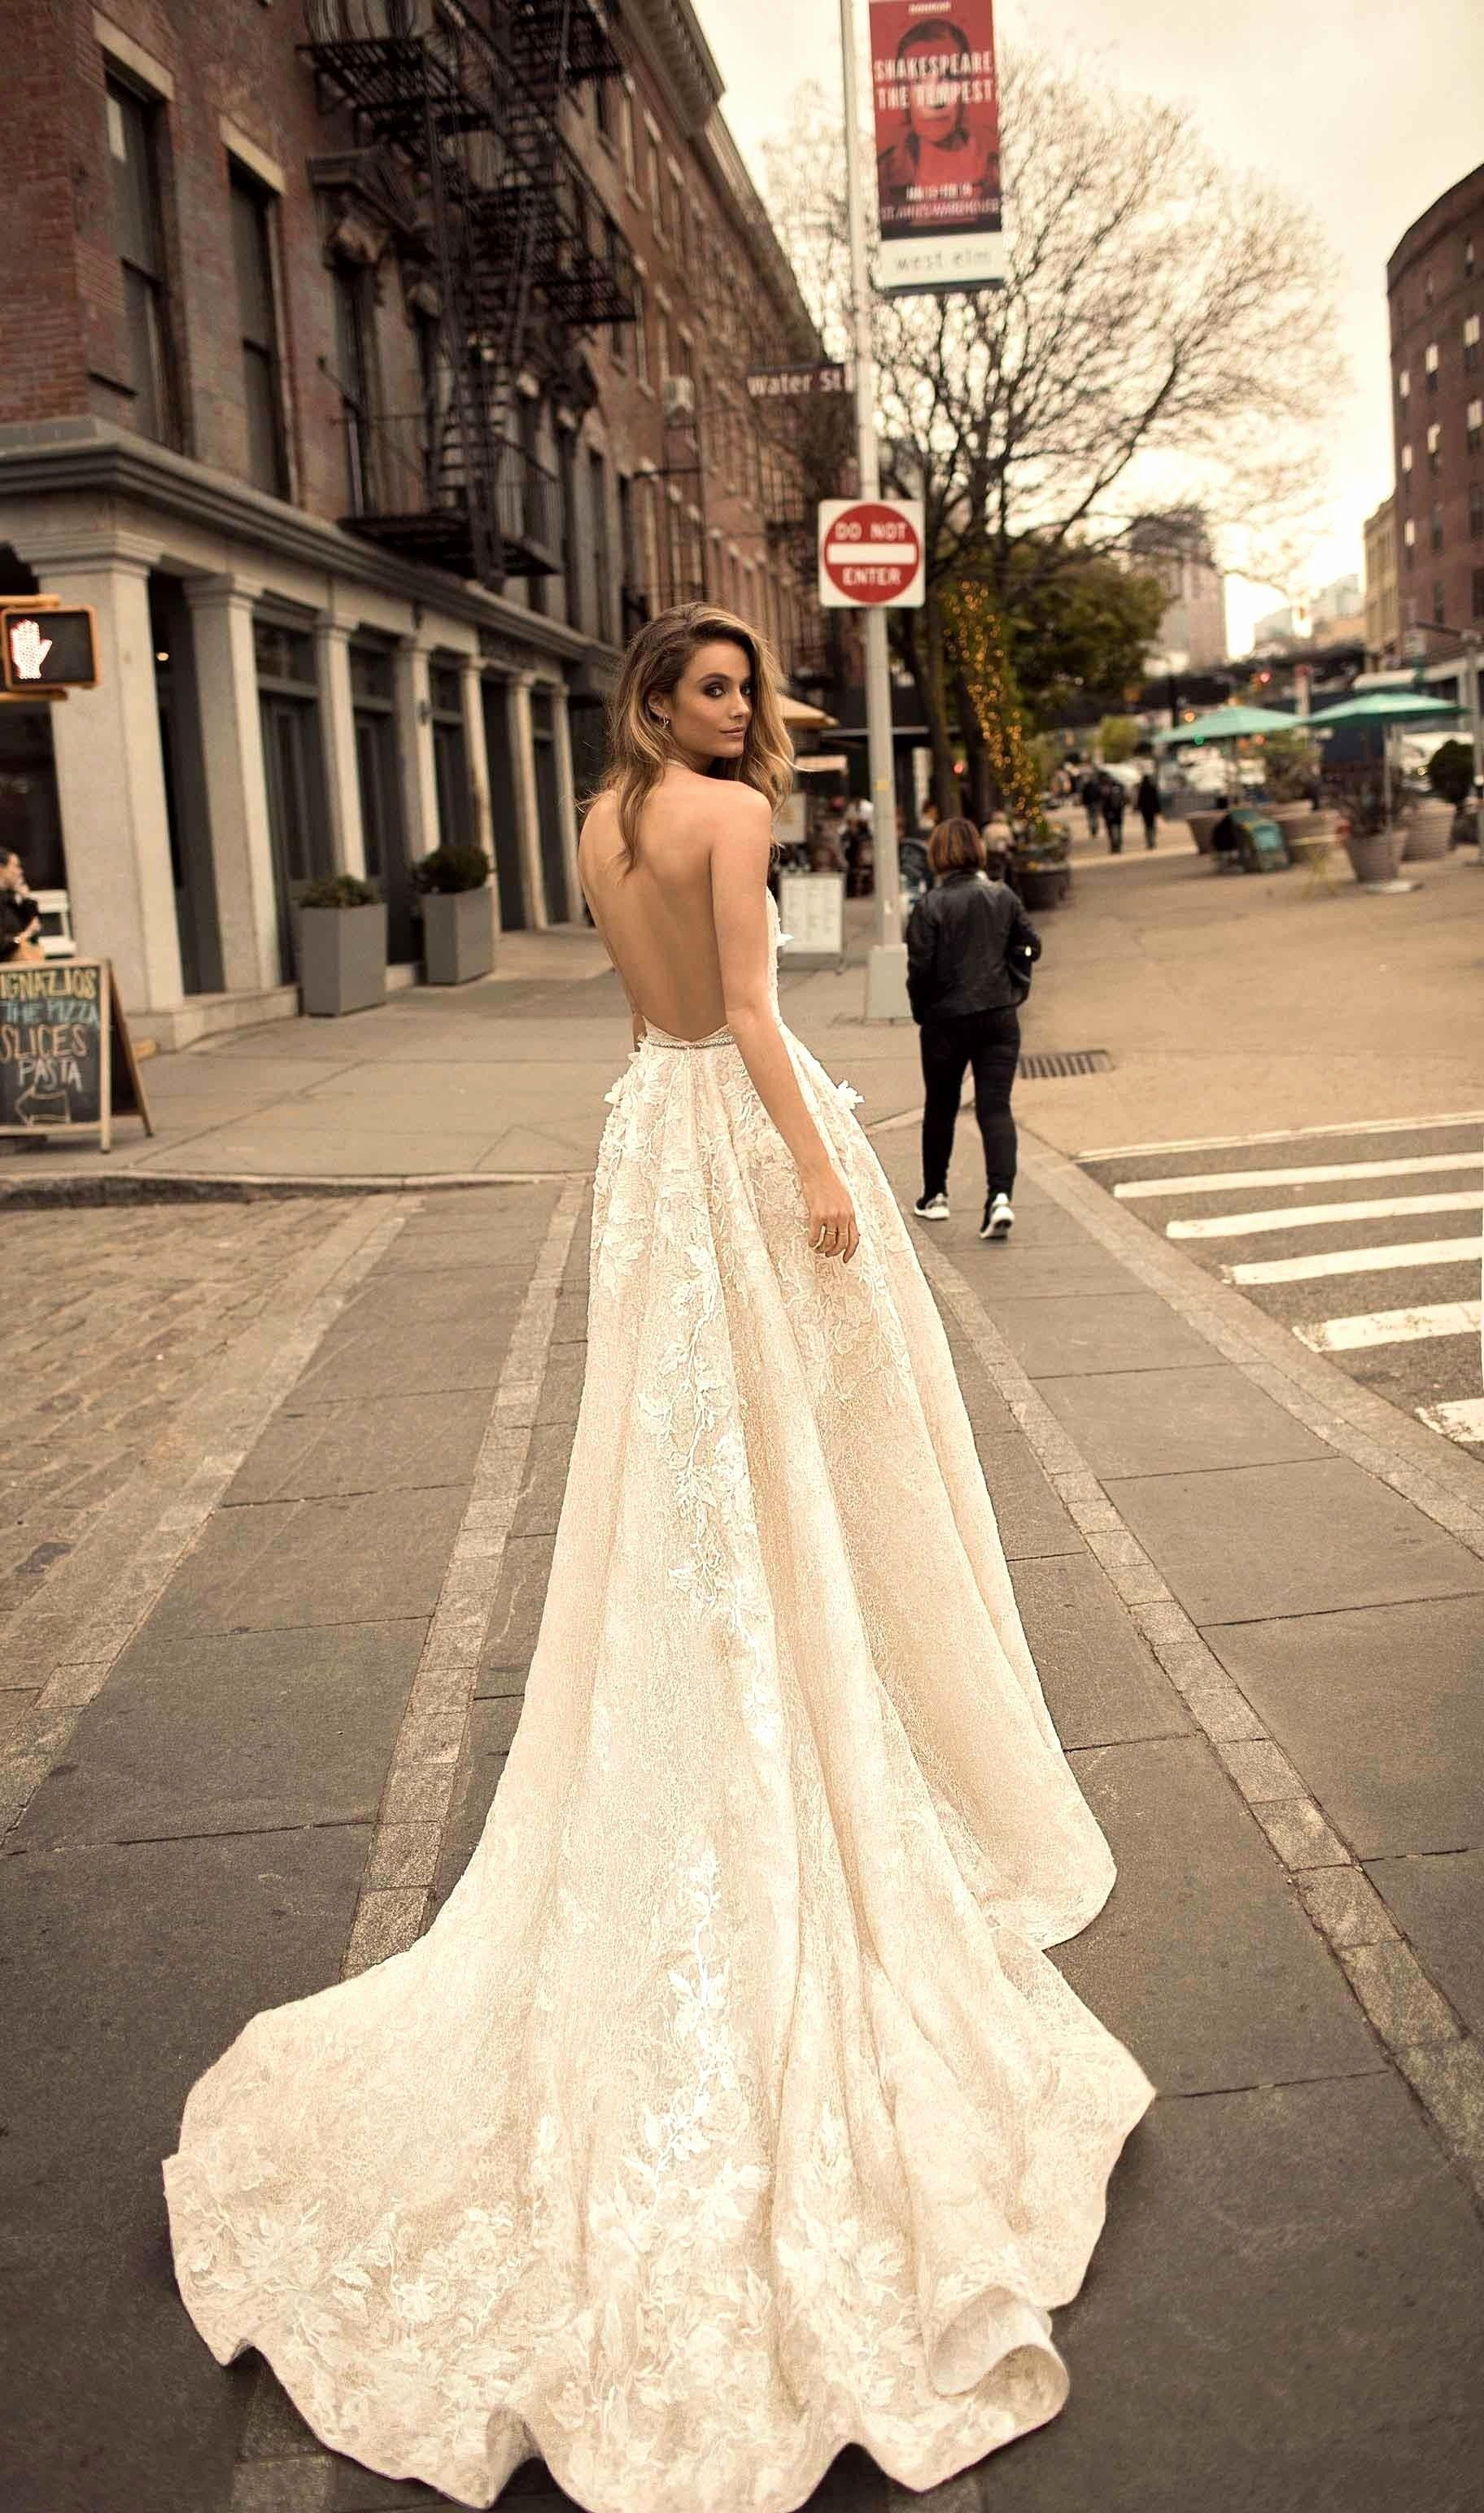 Where To Get My Wedding Dress Cleaned And Preserved In 2020 With Images Wedding Dresses Unique Cheap Wedding Dress Ball Gowns Wedding